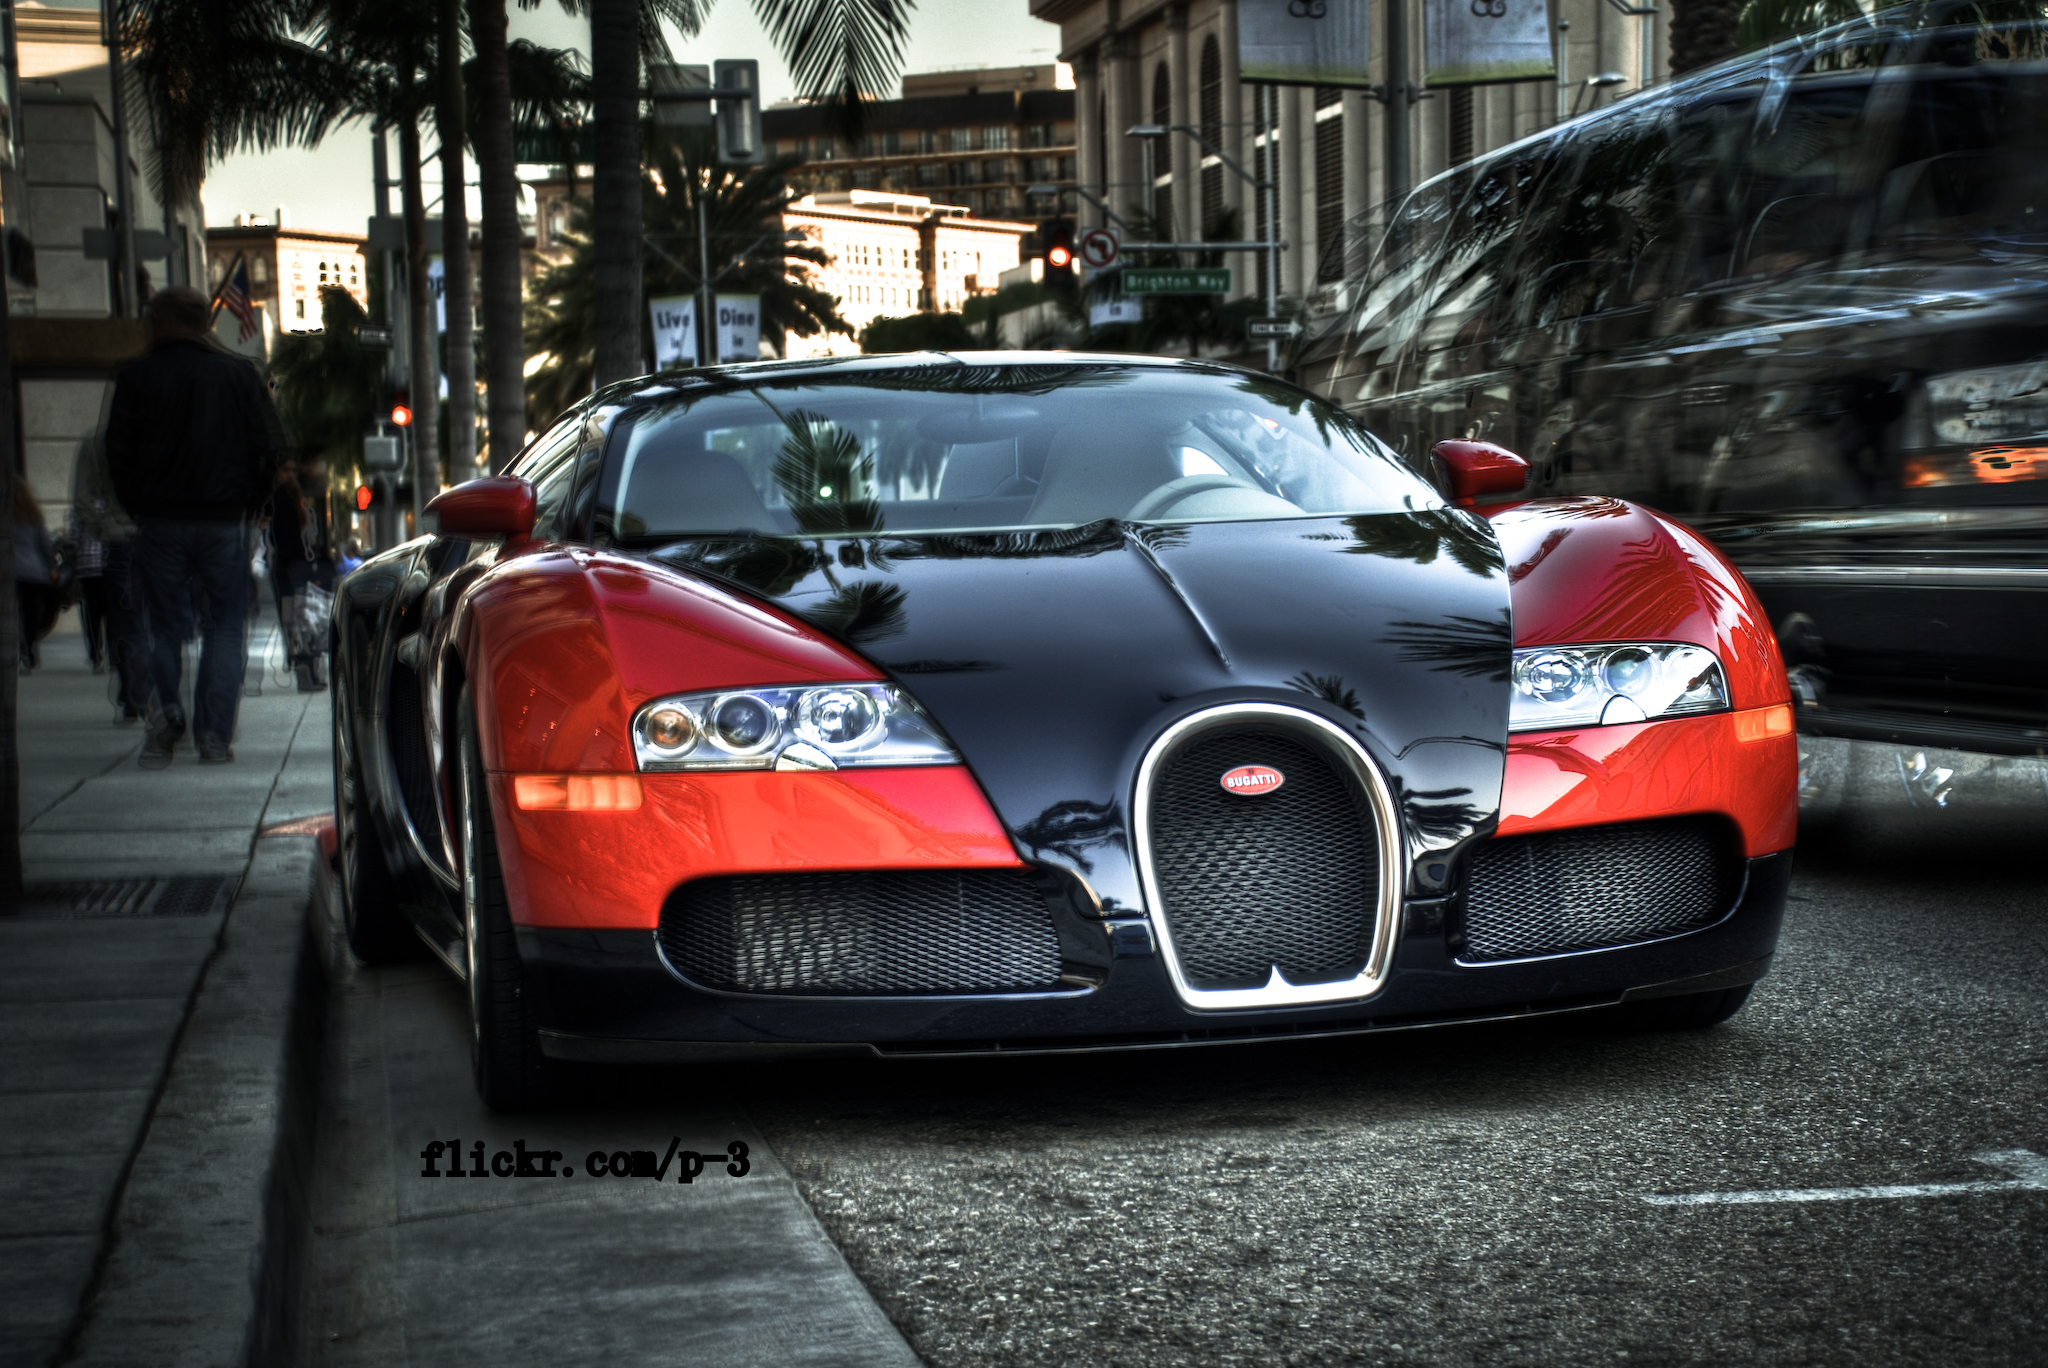 Car Wallpaper High Resolution: Bugatti Wallpapers High Resolution Pictures